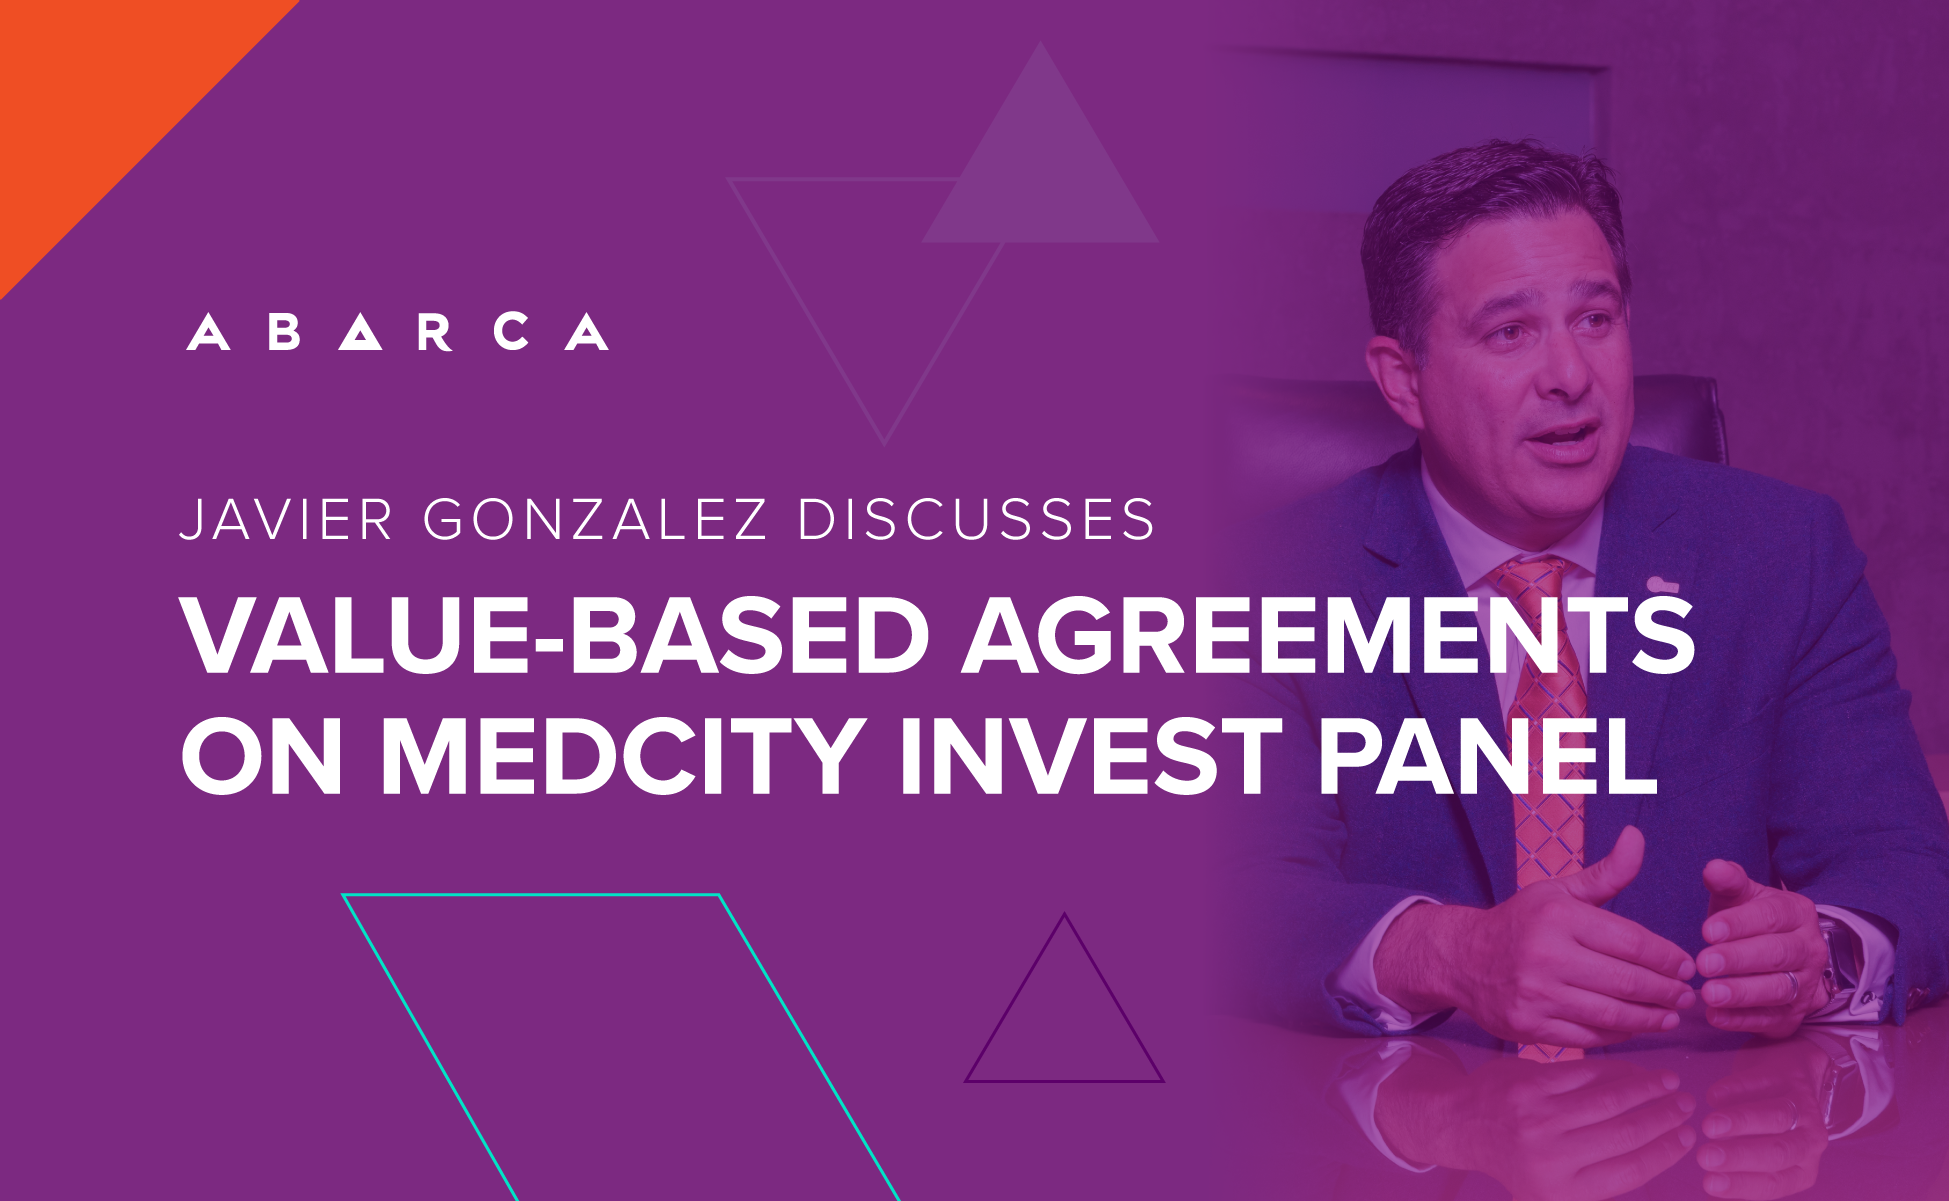 Javier Gonzalez discusses value-based agreements on MedCity INVEST panel